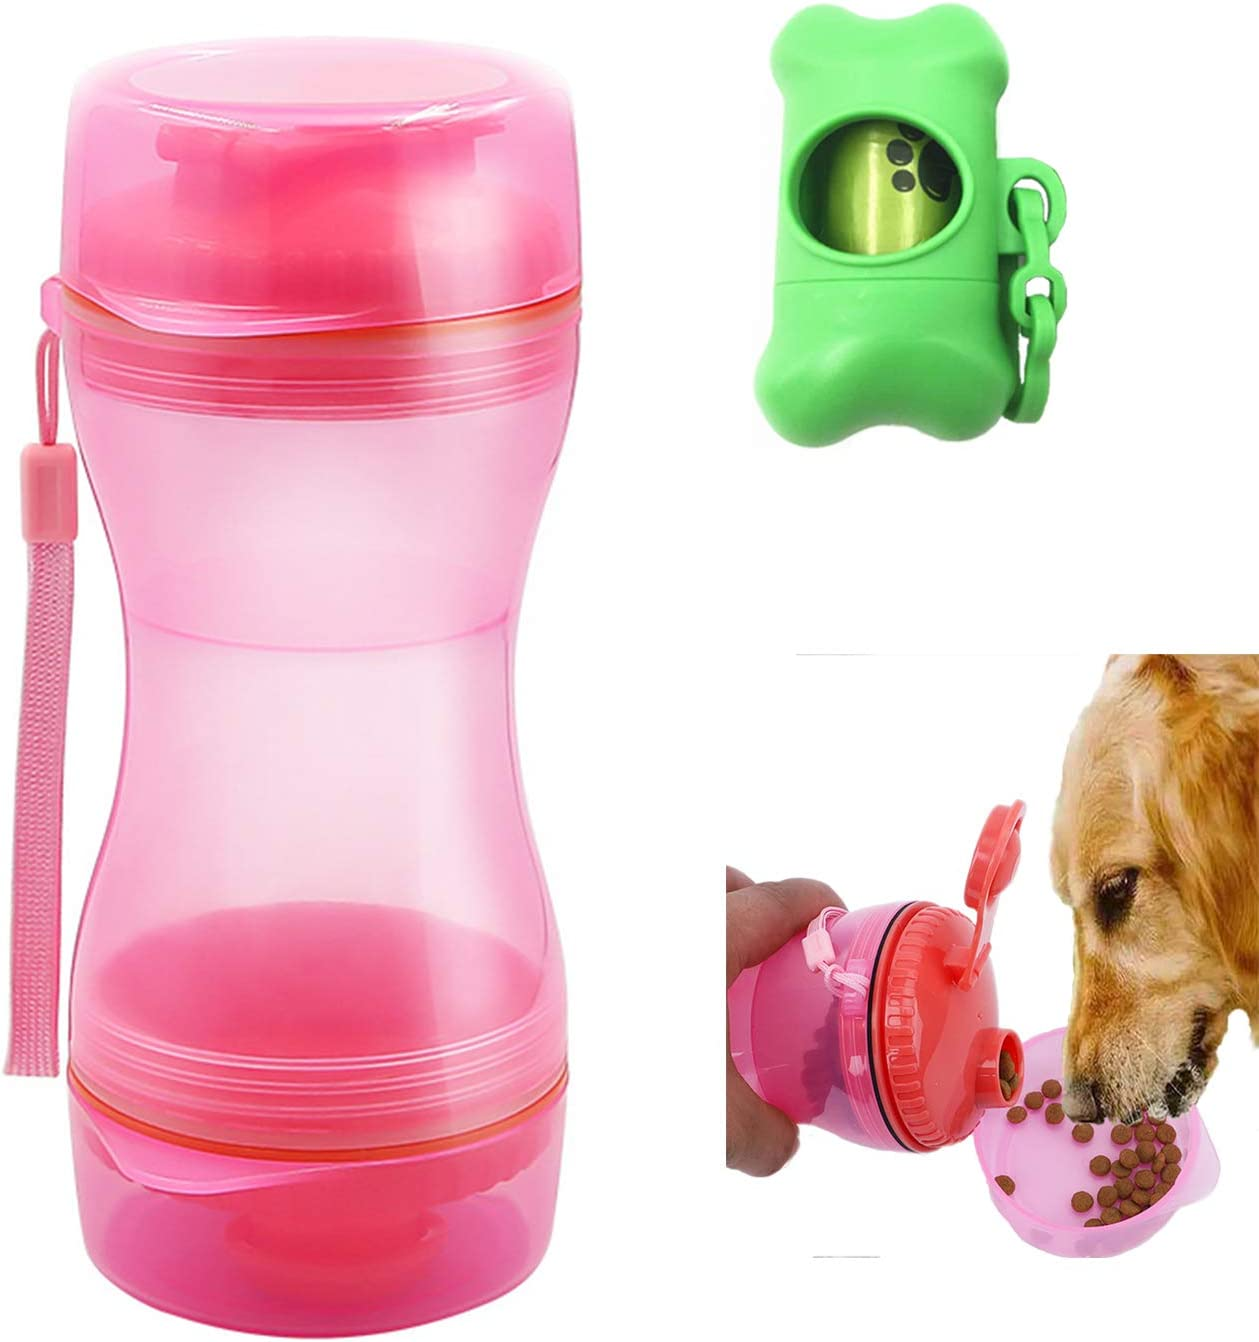 GOTONE Dog Water Food Bottle for Walking Travelling Hiking Camping, 2-in-1 Portable Pet Food Container Outdoor Travel Water Dispenser Leak Proof Cup for Cat Puppy and A Dog Poop Bags + Bag Dispenser